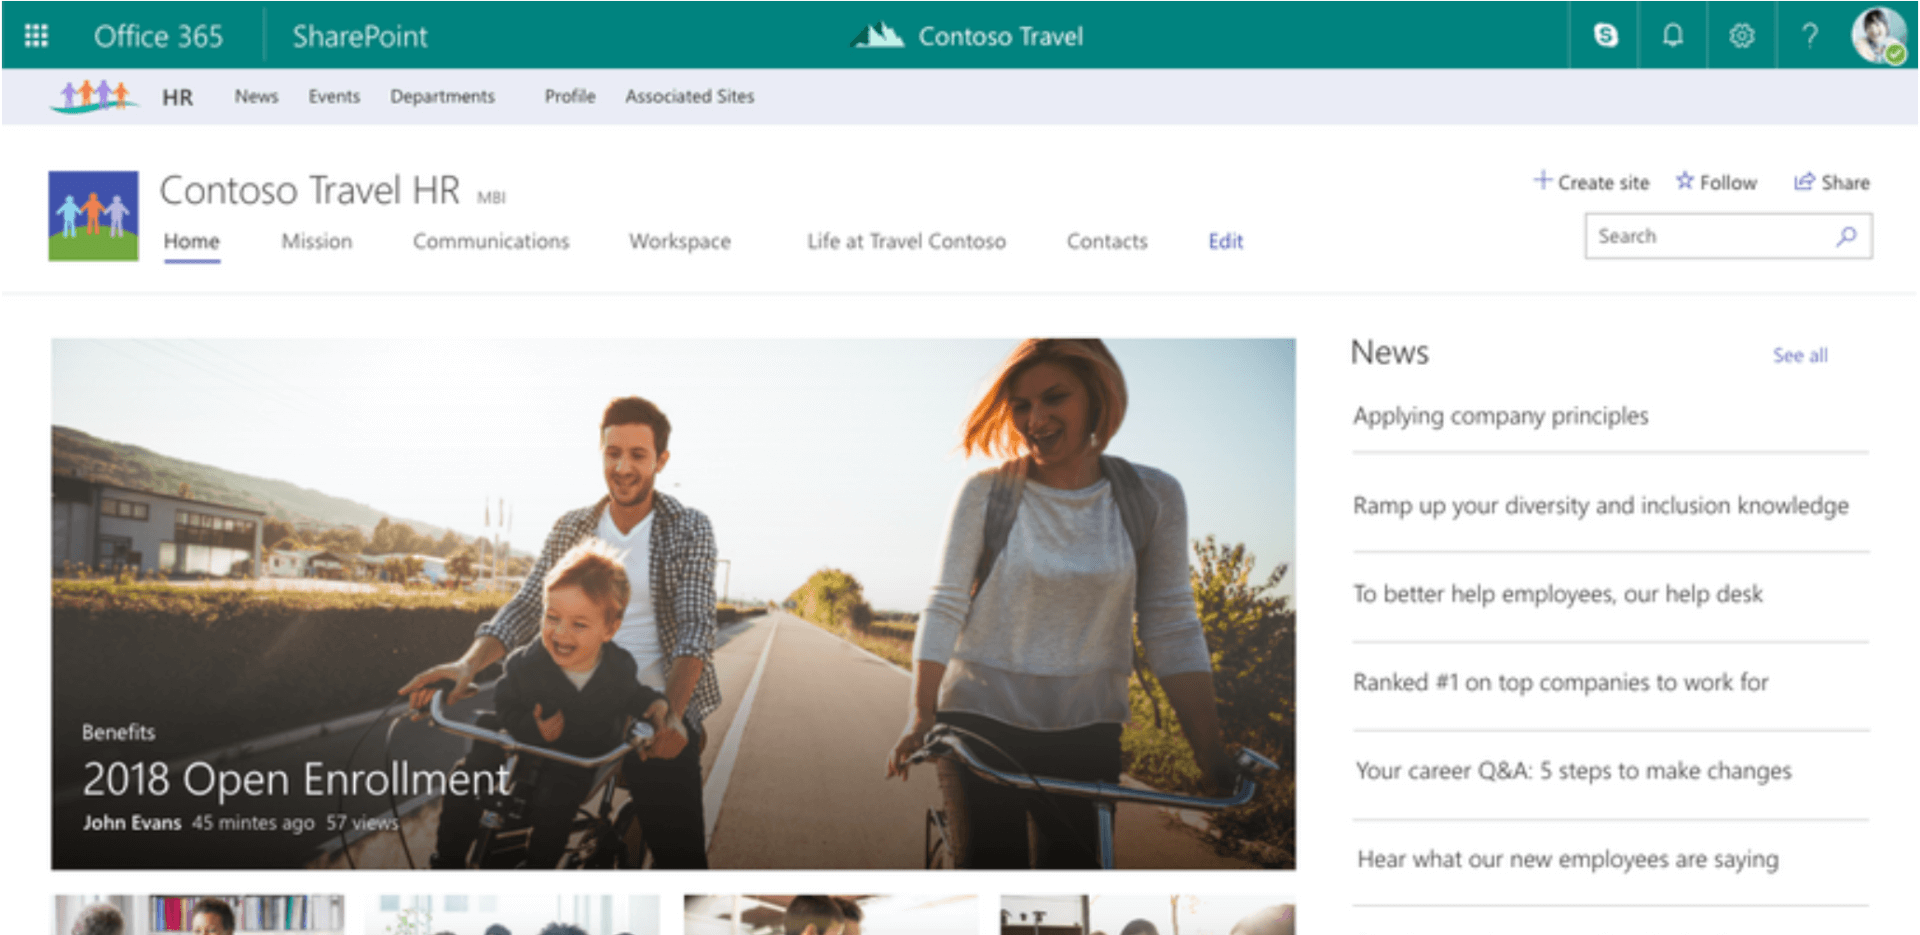 Office 365 SharePoint HR Contoso Travel HR tti 2018 Open Enrollmén€ tOSO Travel News Ramp up our Ranked •l cornpanies to for S Steps to what are